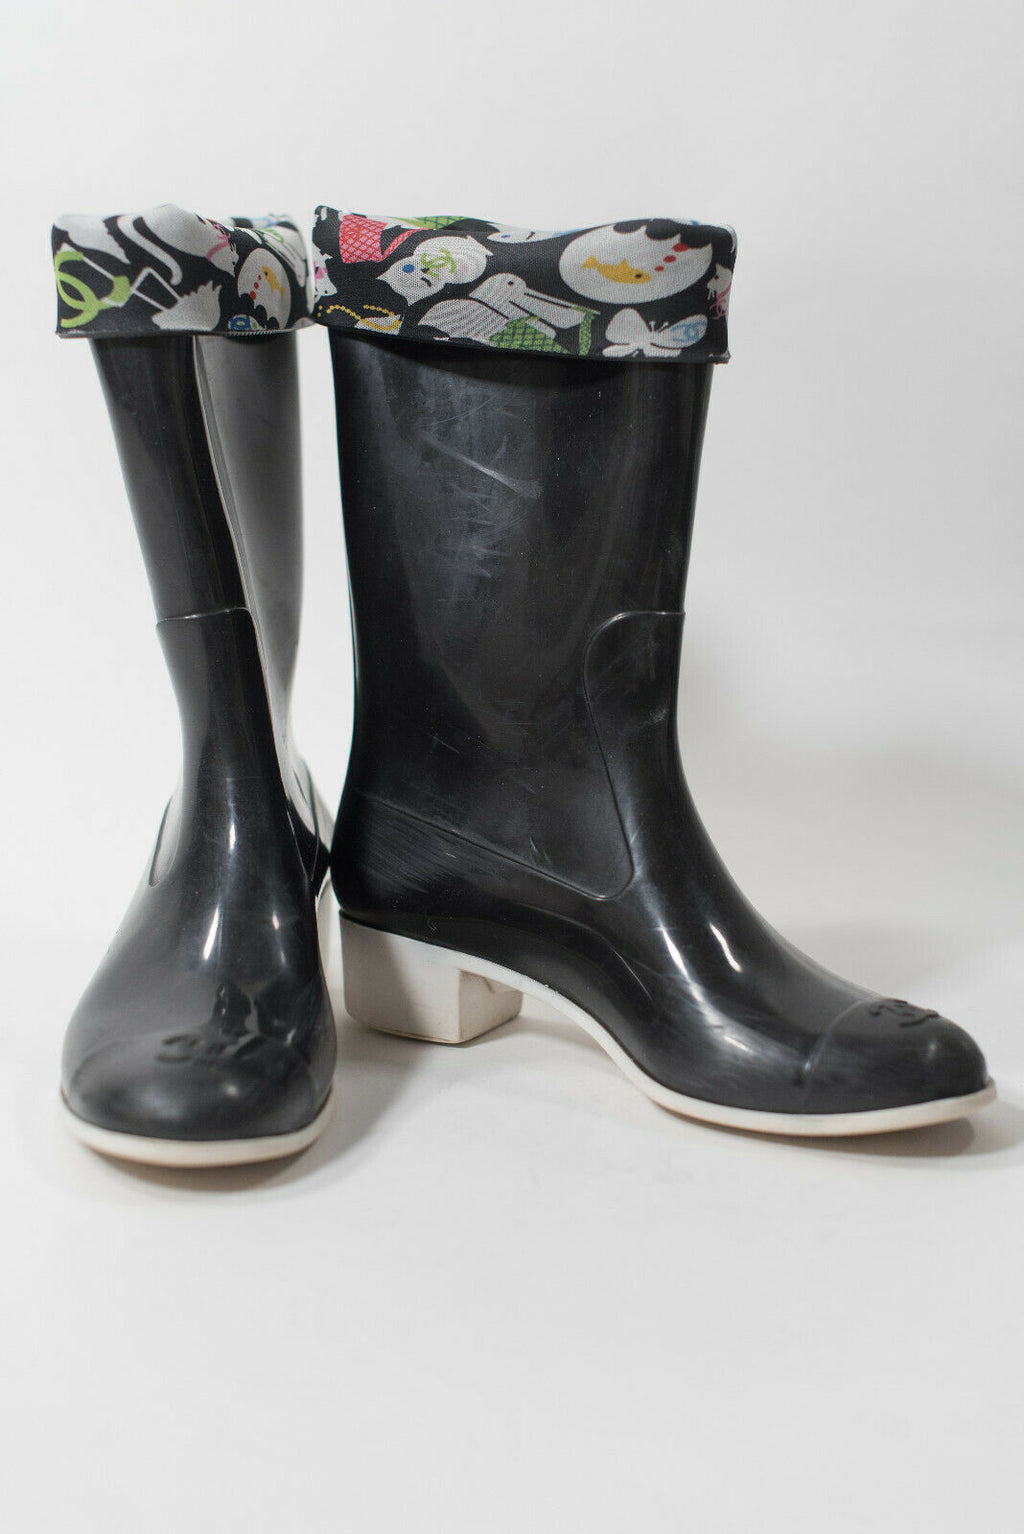 Chanel Womens Size 39 Black Rain Boots Rubber Flower Baby Animal Limited Edition